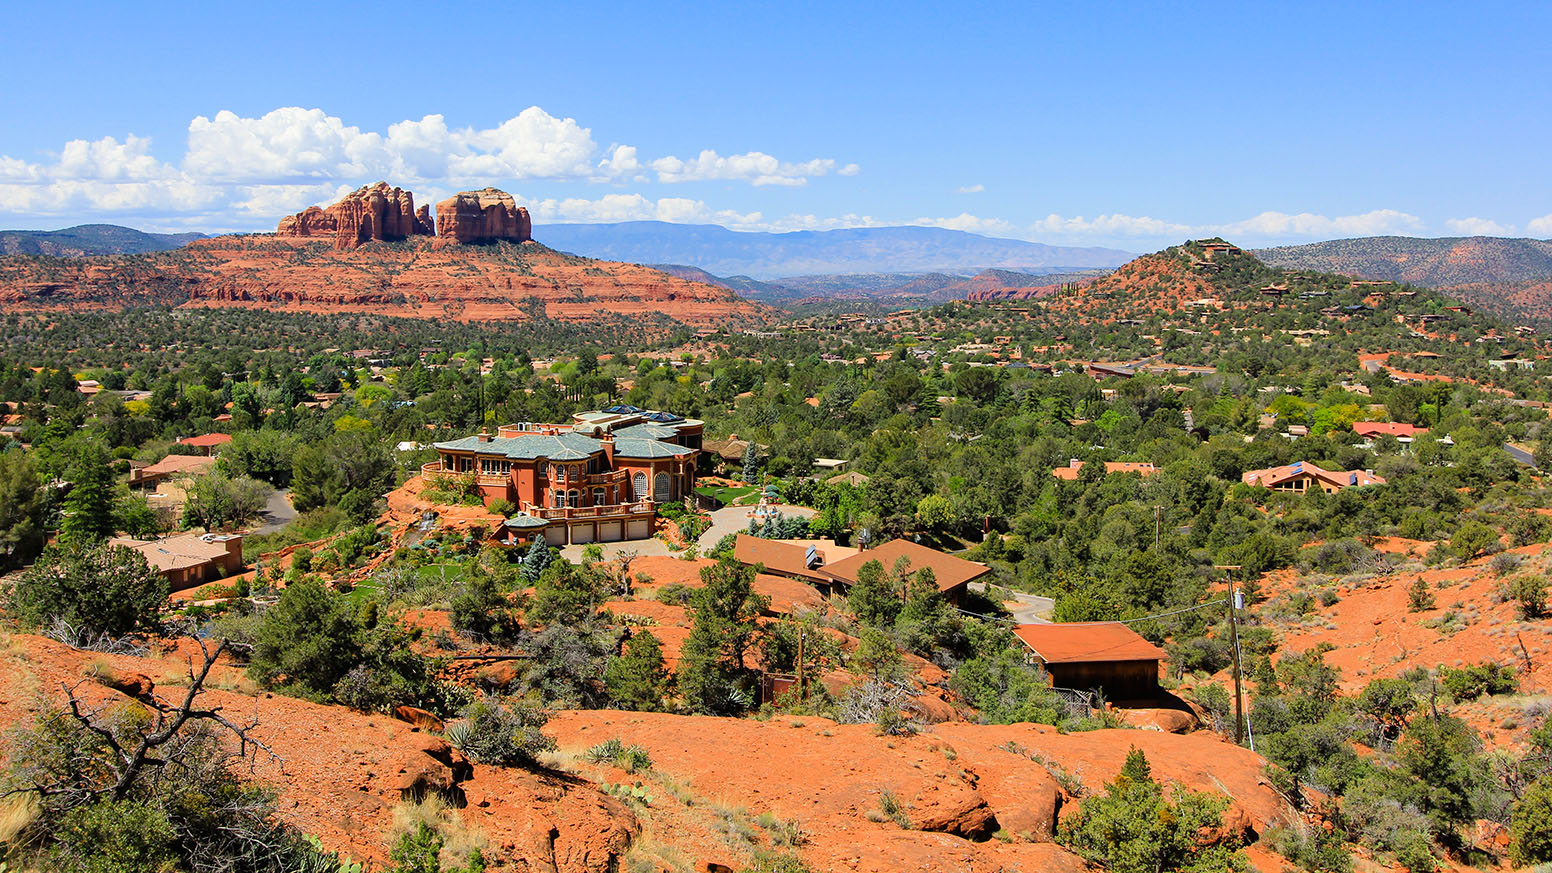 Sedona Red Rock Views - Wanderlusters